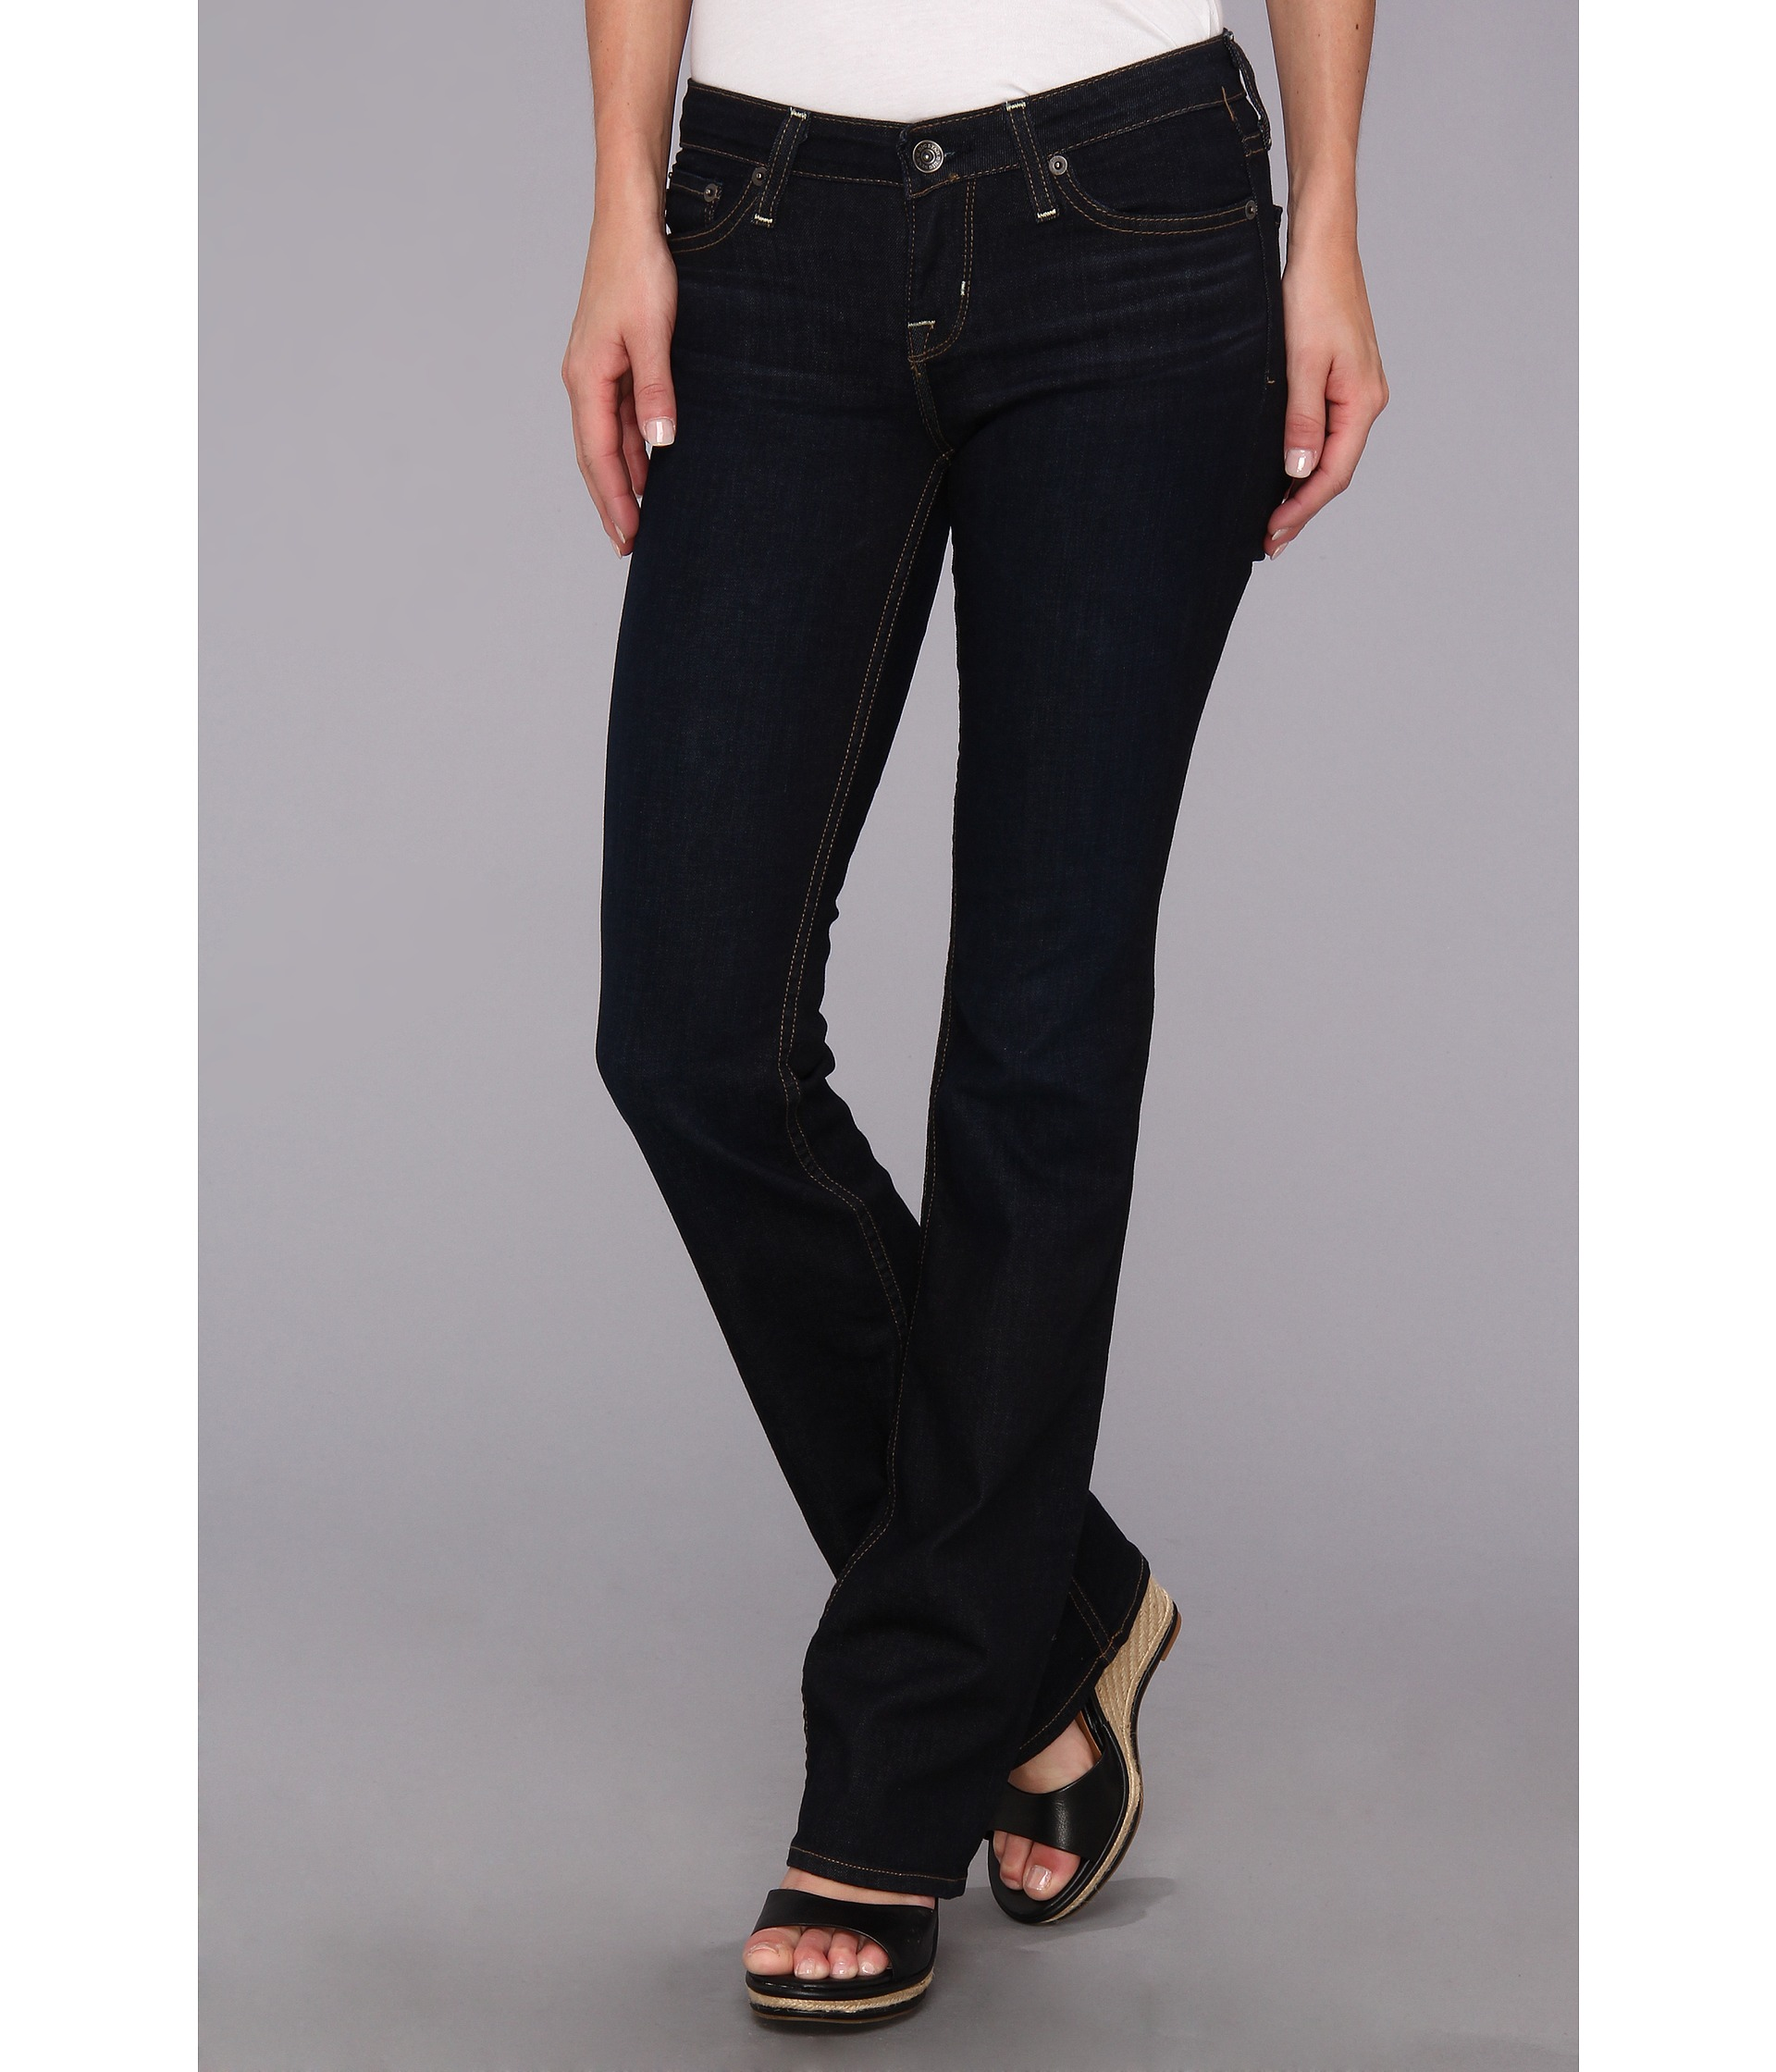 Ladies Black Bootcut Jeans - Jon Jean